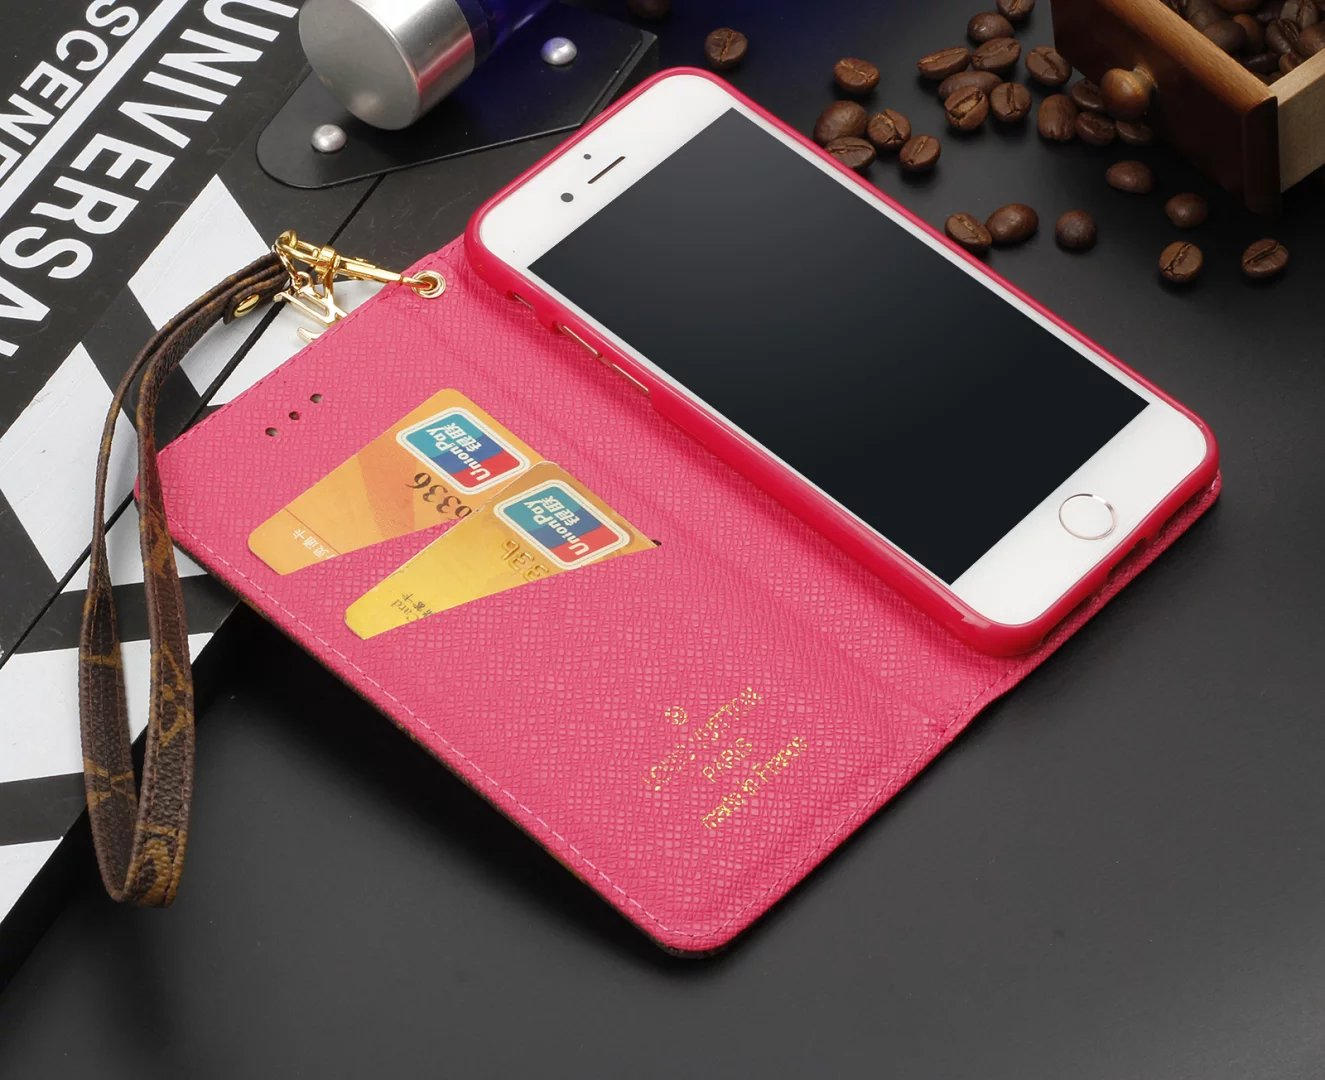 iphone silikonhülle iphone hüllen günstig Louis Vuitton iphone6s plus hülle pinke iphone 6s Plus hülle persönliche iphone hülle apple handy 6 handyhülle mit foto iphone 6s Plus beste hülle für iphone 6s Plus iphone 6s Plus handy ca6s